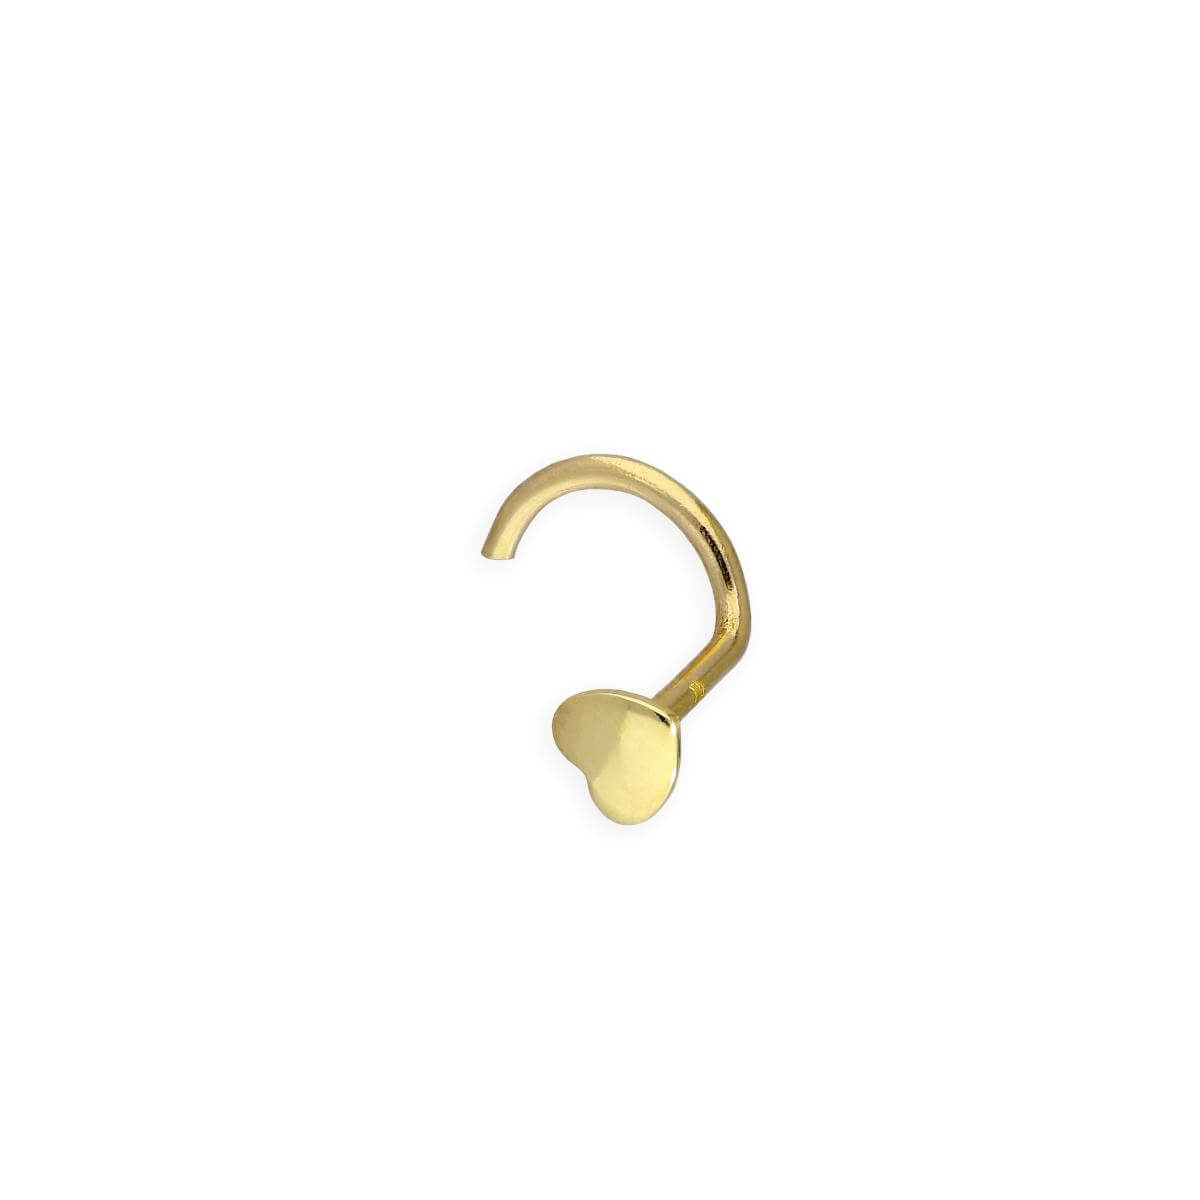 9ct Gold 23Ga Heart Nose Screw